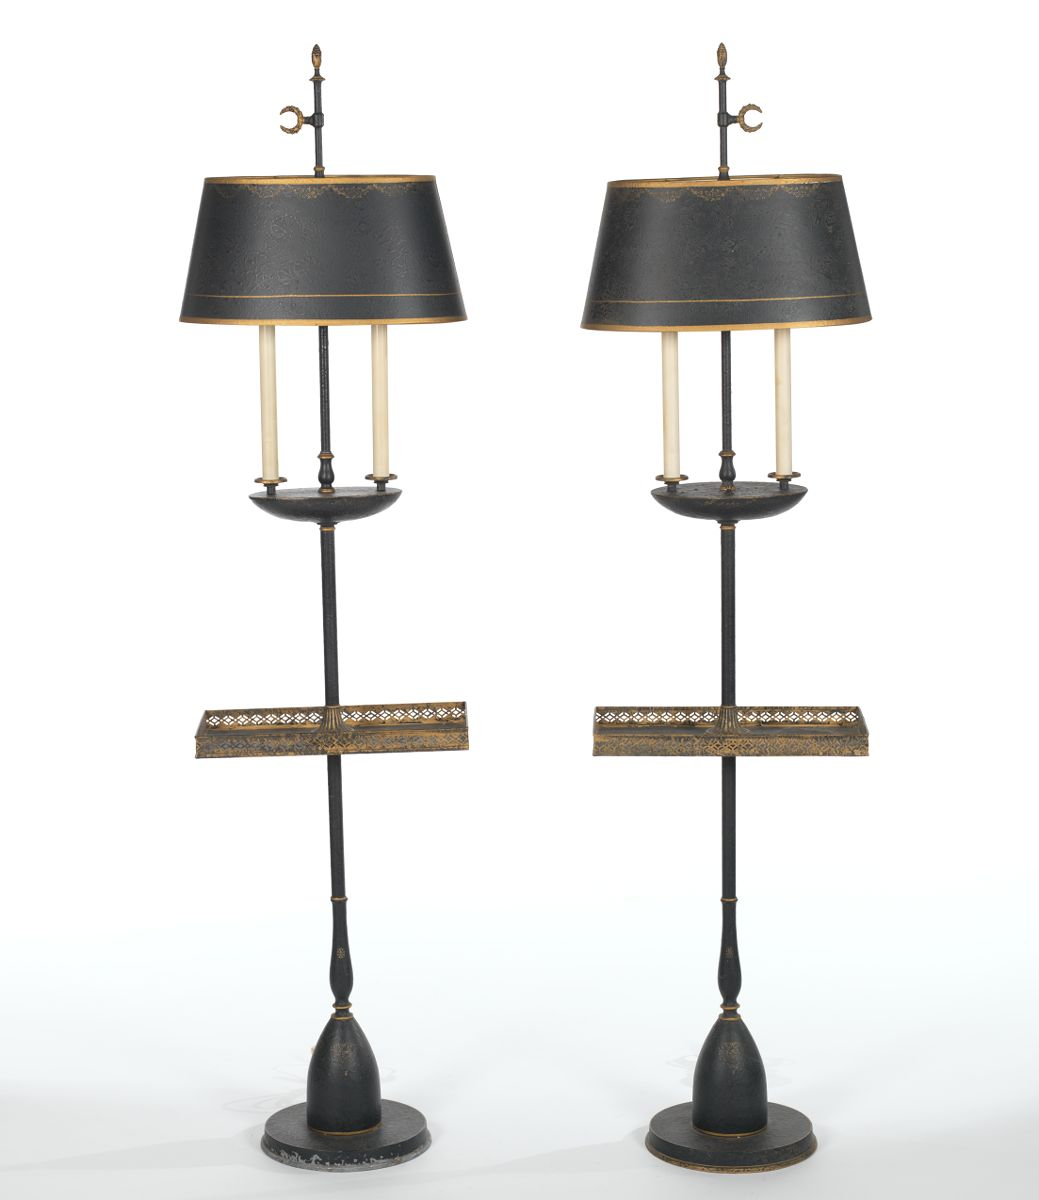 A Pair of Tray Table Floor Lamps, 06.20.14, Sold: $184